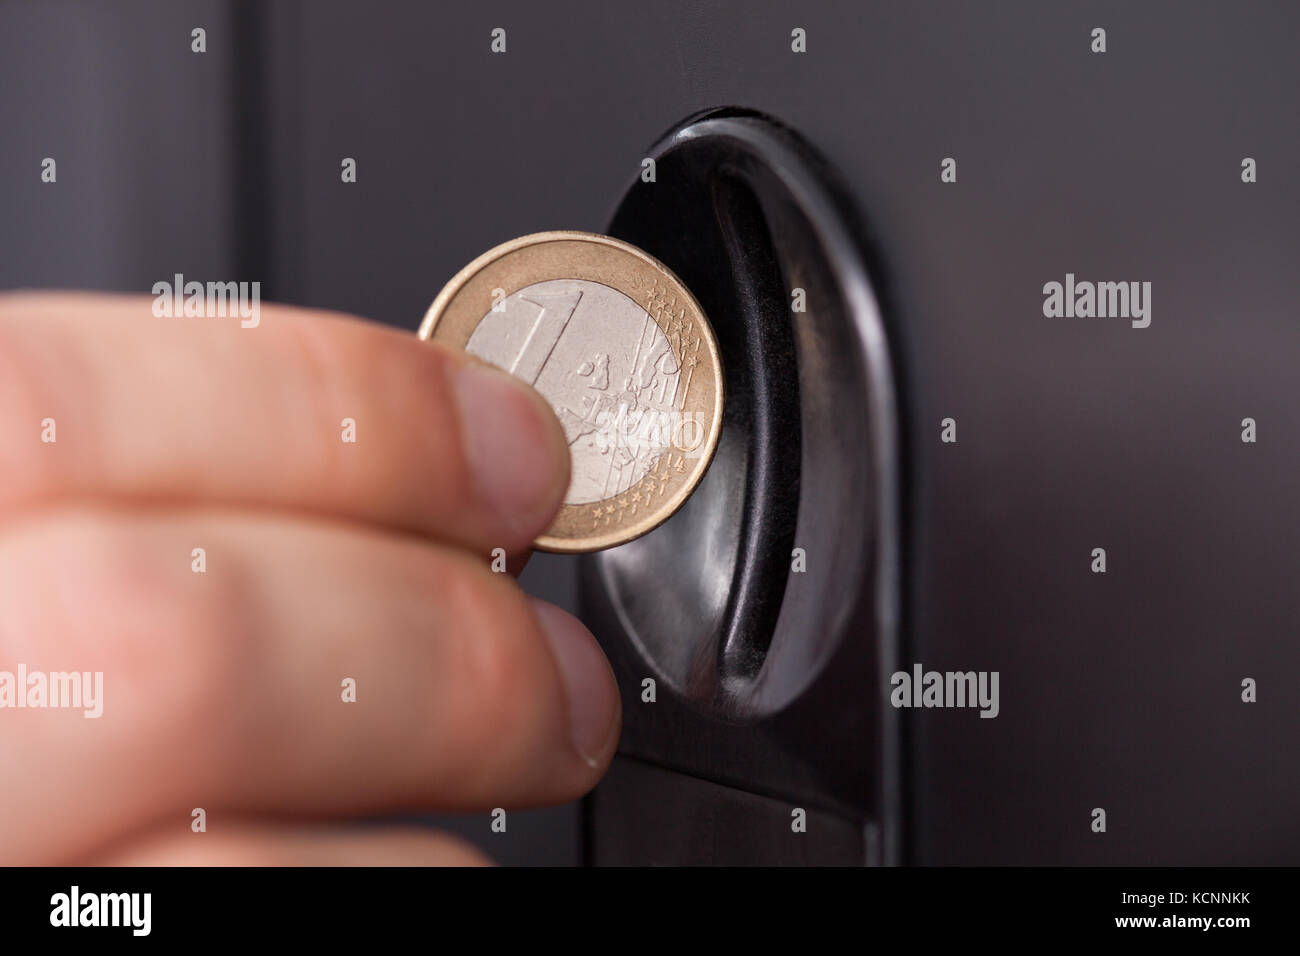 Close-up of human hand inserting coin in vending machine - Stock Image